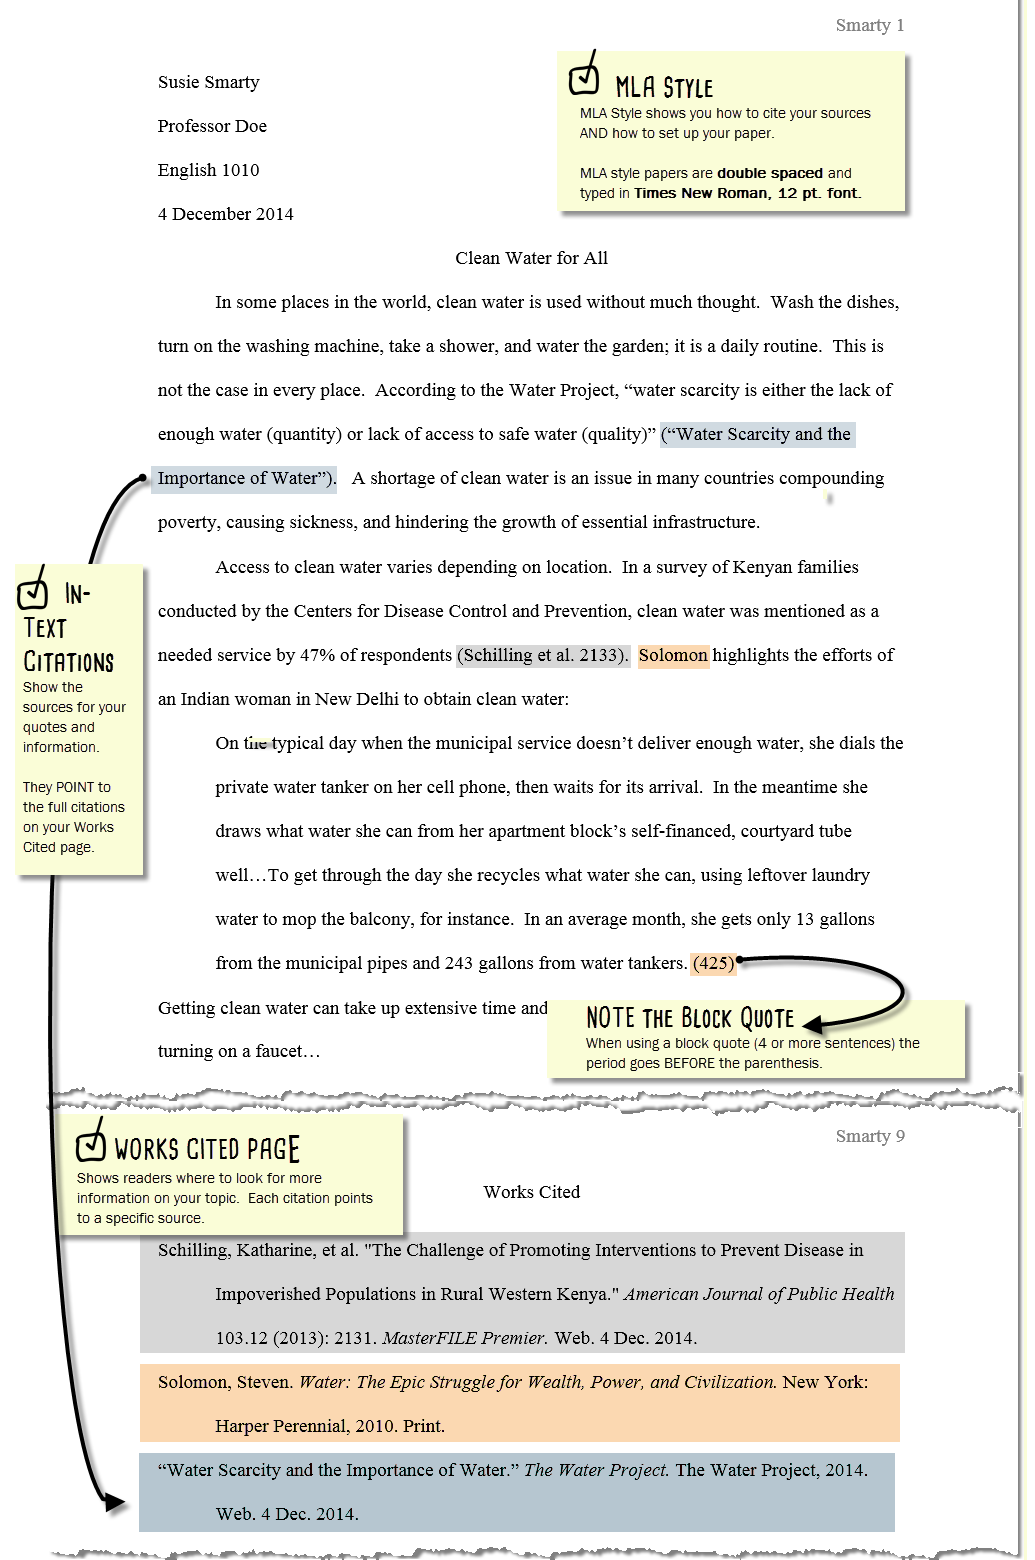 002 Citations In Research Paper Mla Awesome A Citing Sources Citation Example Full